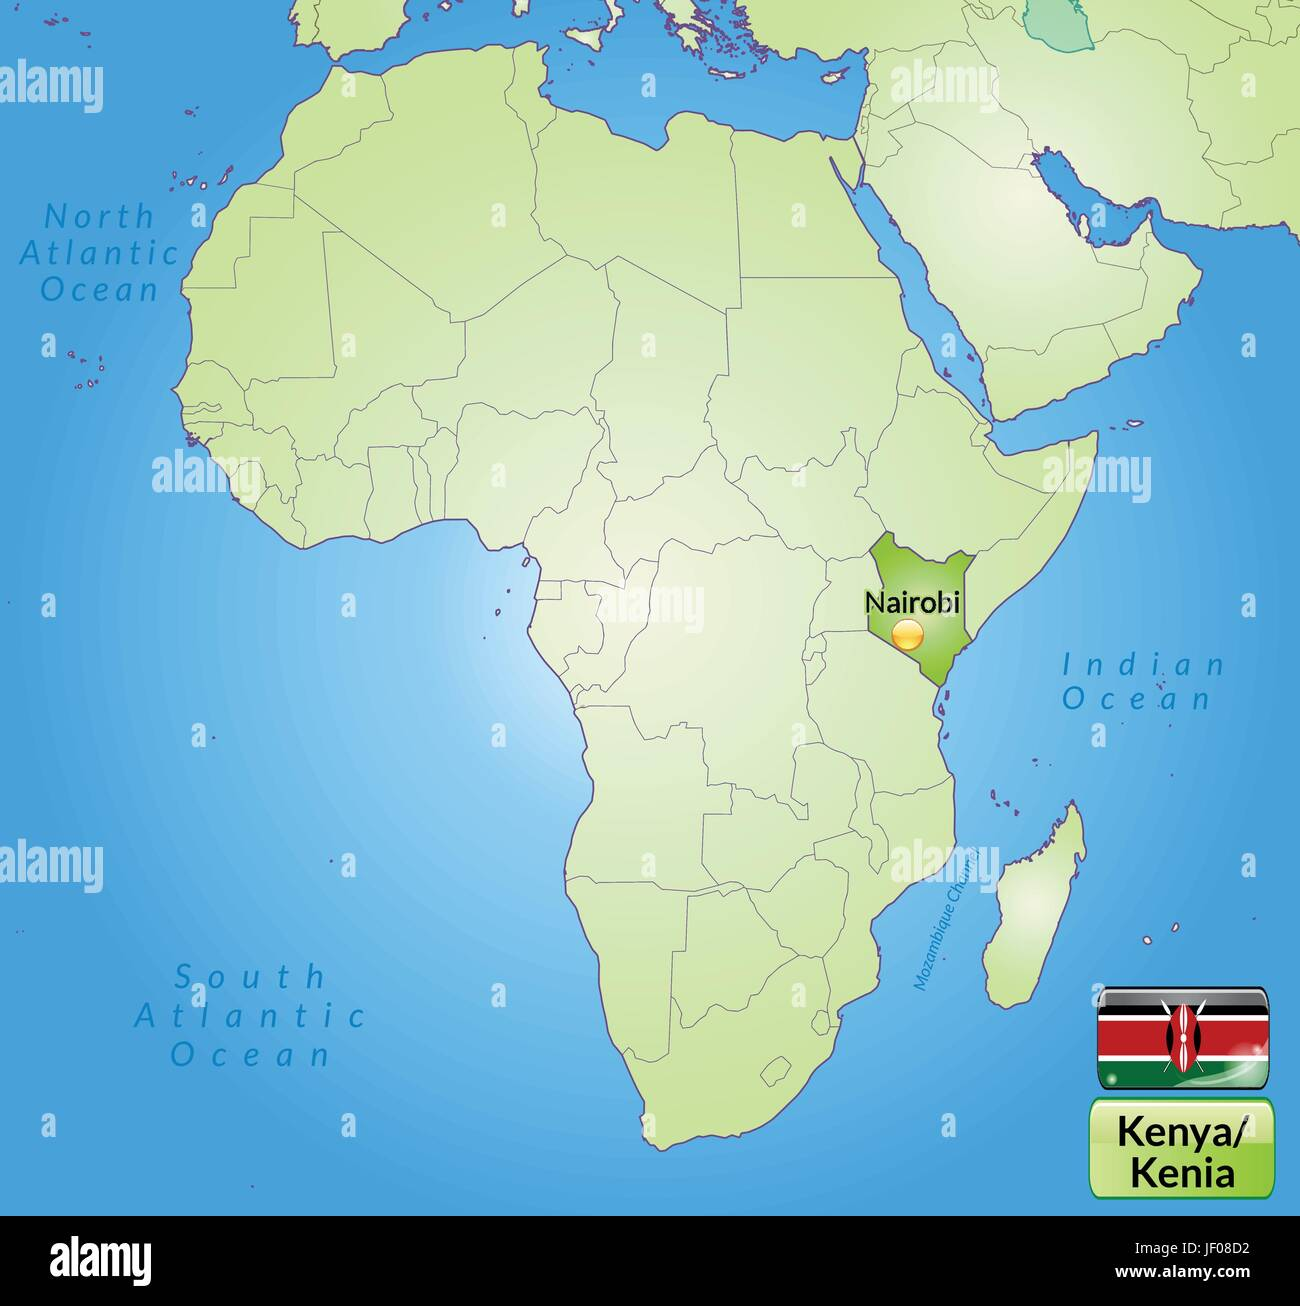 Map Of Kenya Stock Photos & Map Of Kenya Stock Images - Alamy Kenya World Map on liberia world map, tanzania world map, turkey world map, jamaica world map, rwanda world map, malawi world map, madagascar world map, ethiopia world map, africa world map, indonesia world map, uae world map, portugal world map, lesotho world map, guatemala world map, nigeria world map, iran world map, uganda world map, algeria world map, kuwait world map, mozambique world map,